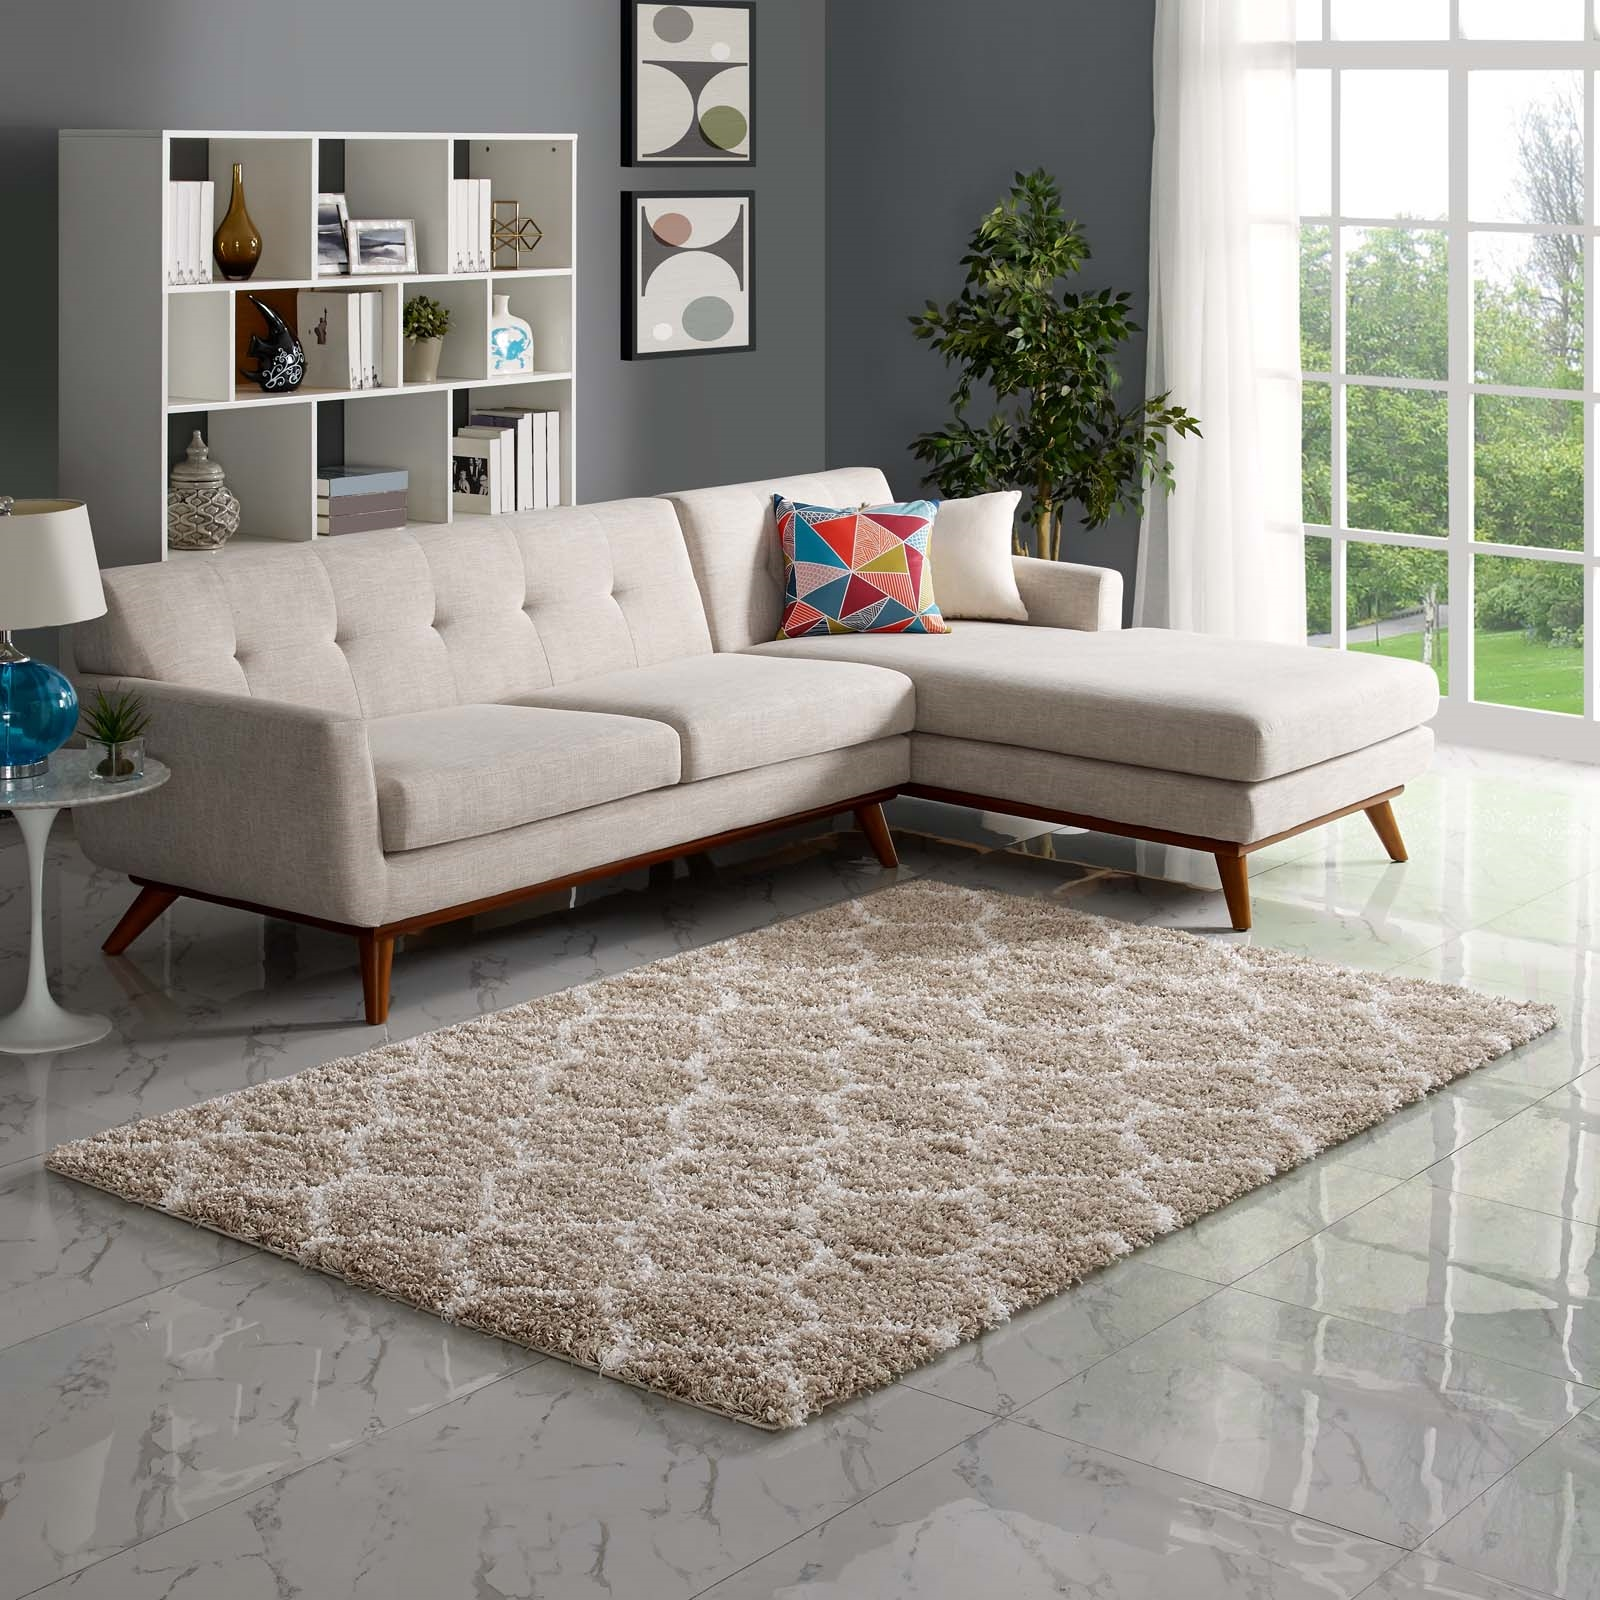 Solvea Moroccan Trellis 5x8 Shag Area Rug in Beige and Ivory